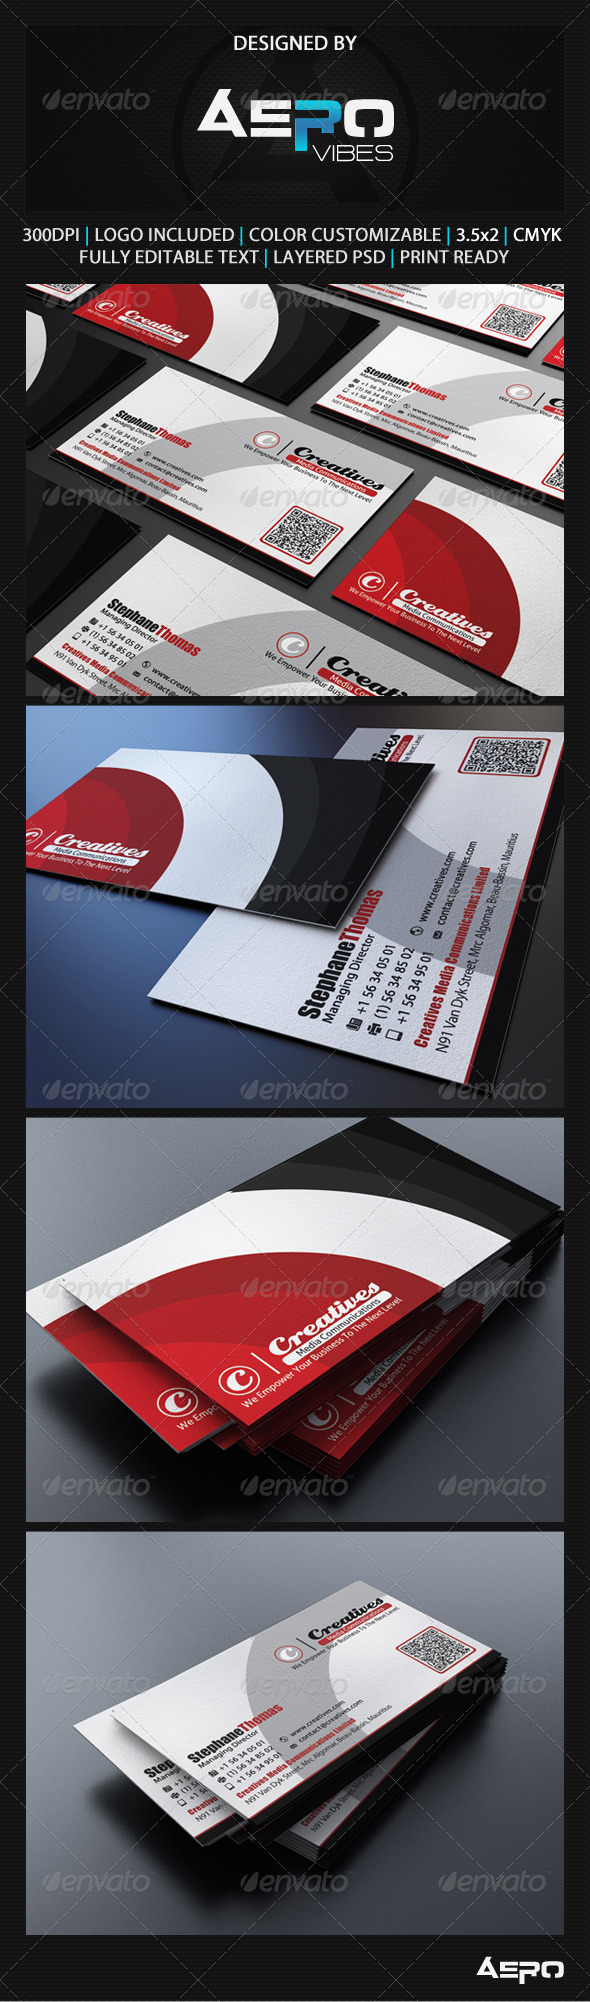 GraphicRiver Smart Business Card 3541824